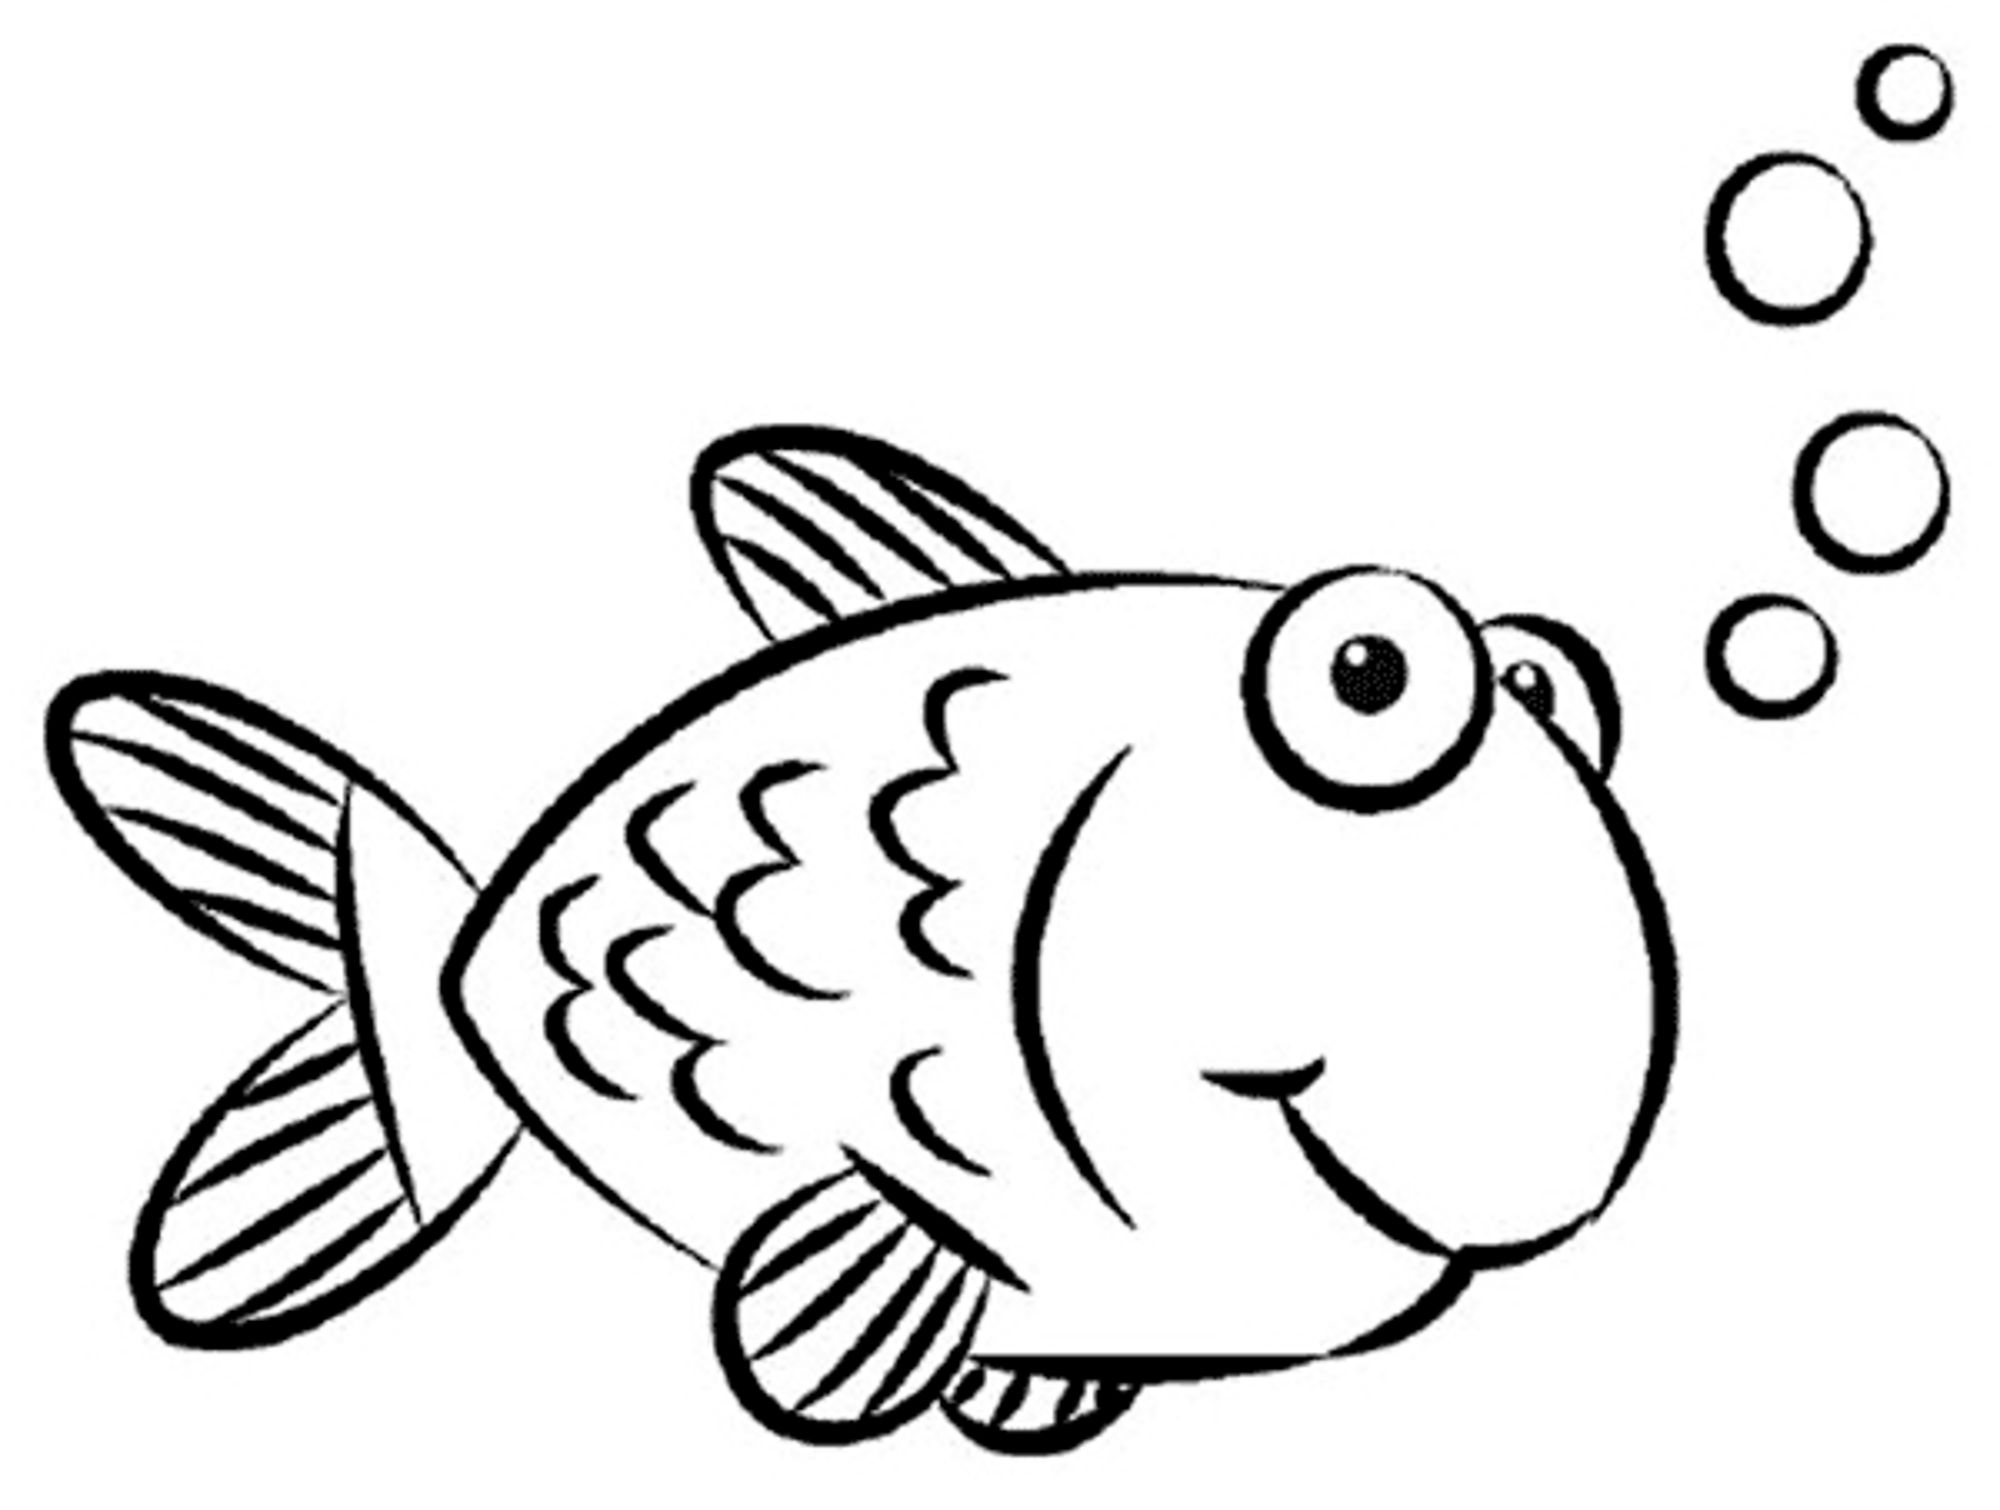 pictures of fish coloring pages free printable fish coloring pages for kids cool2bkids of coloring fish pictures pages